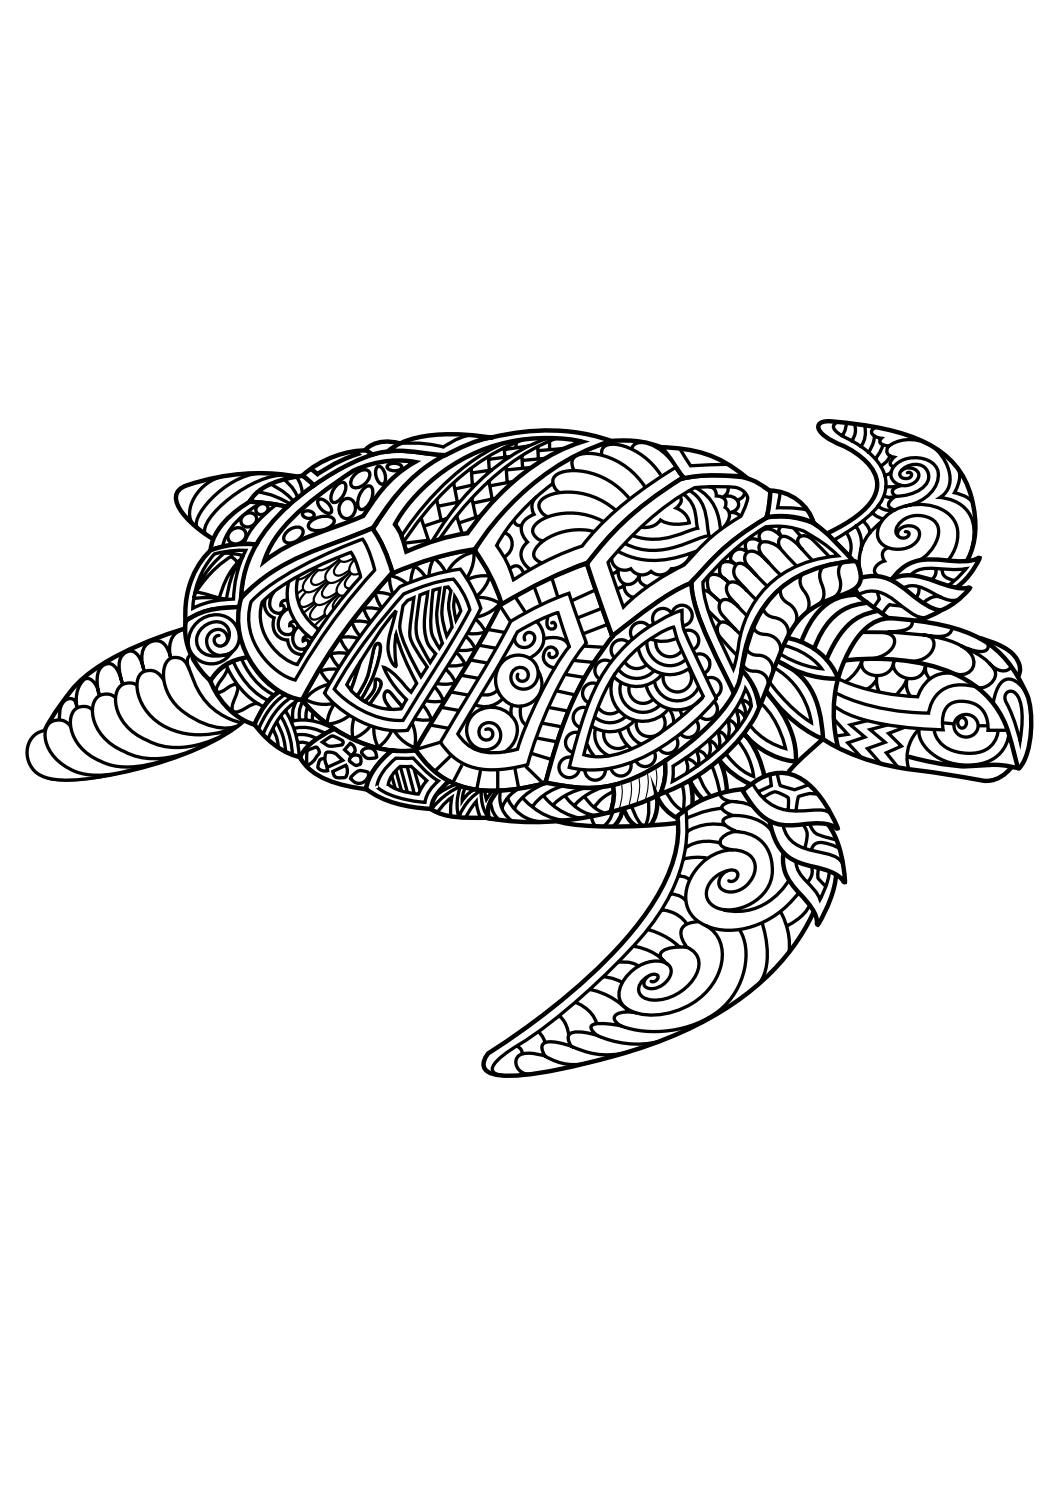 Animal Coloring Pages Pdf Turtle Coloring Pages Animal Coloring